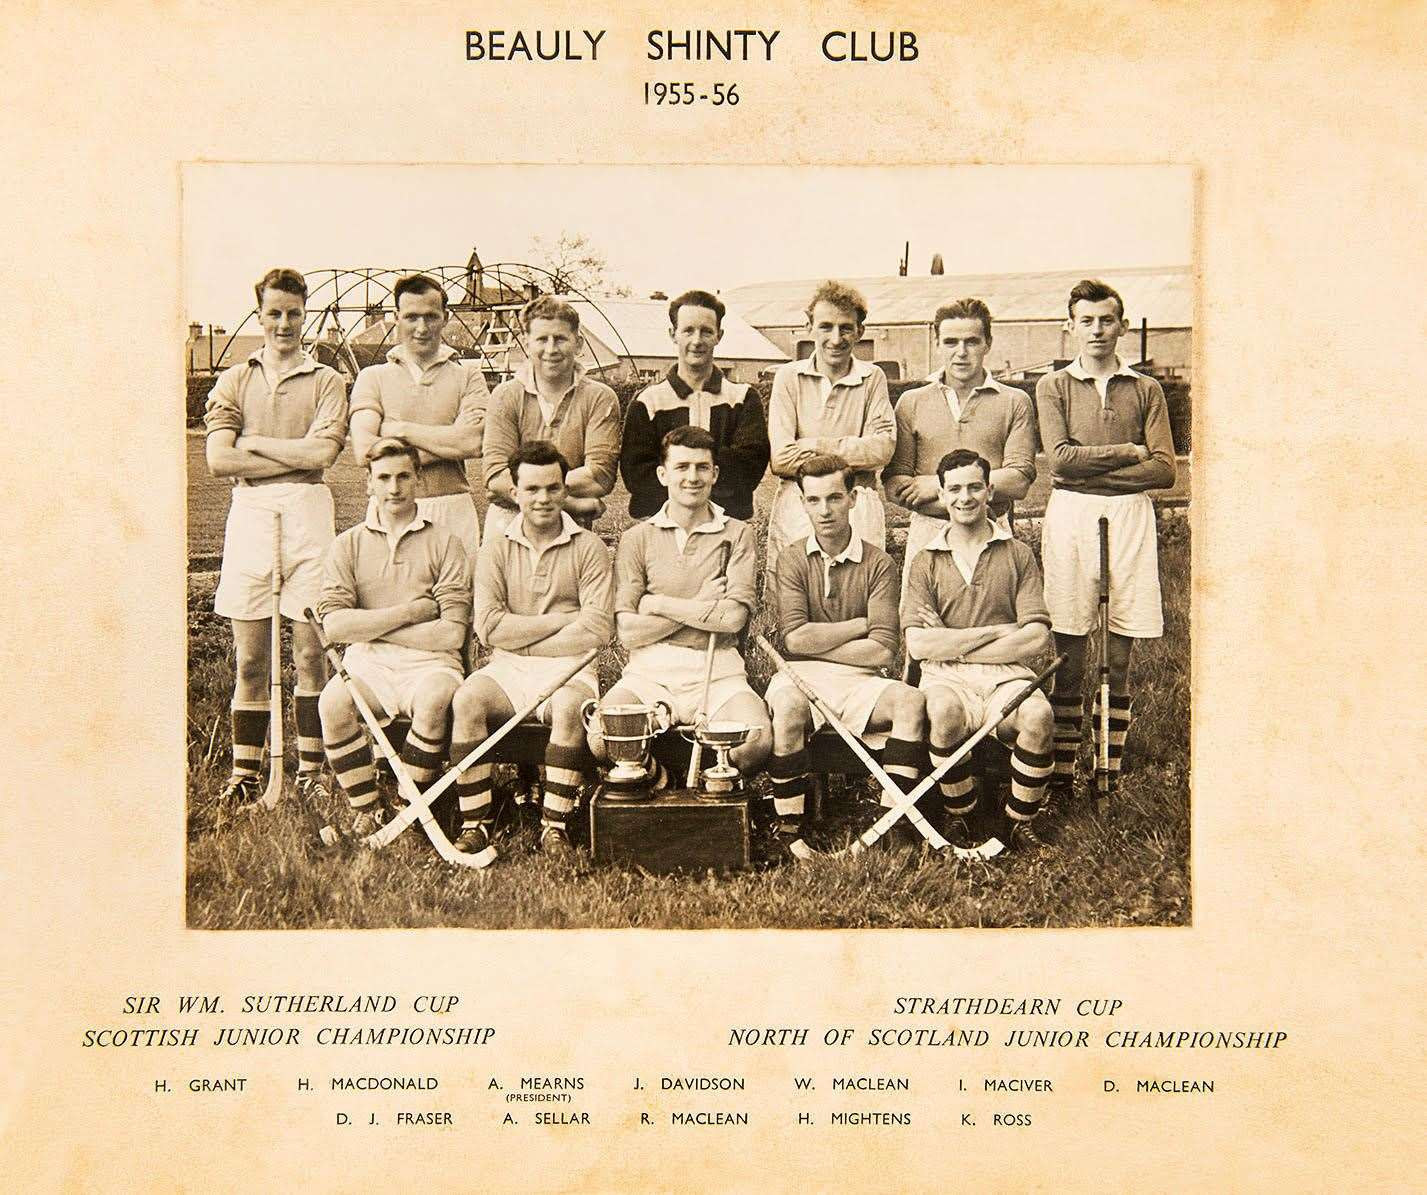 Picture of Beauly Shinty Club 1955-56 squad.